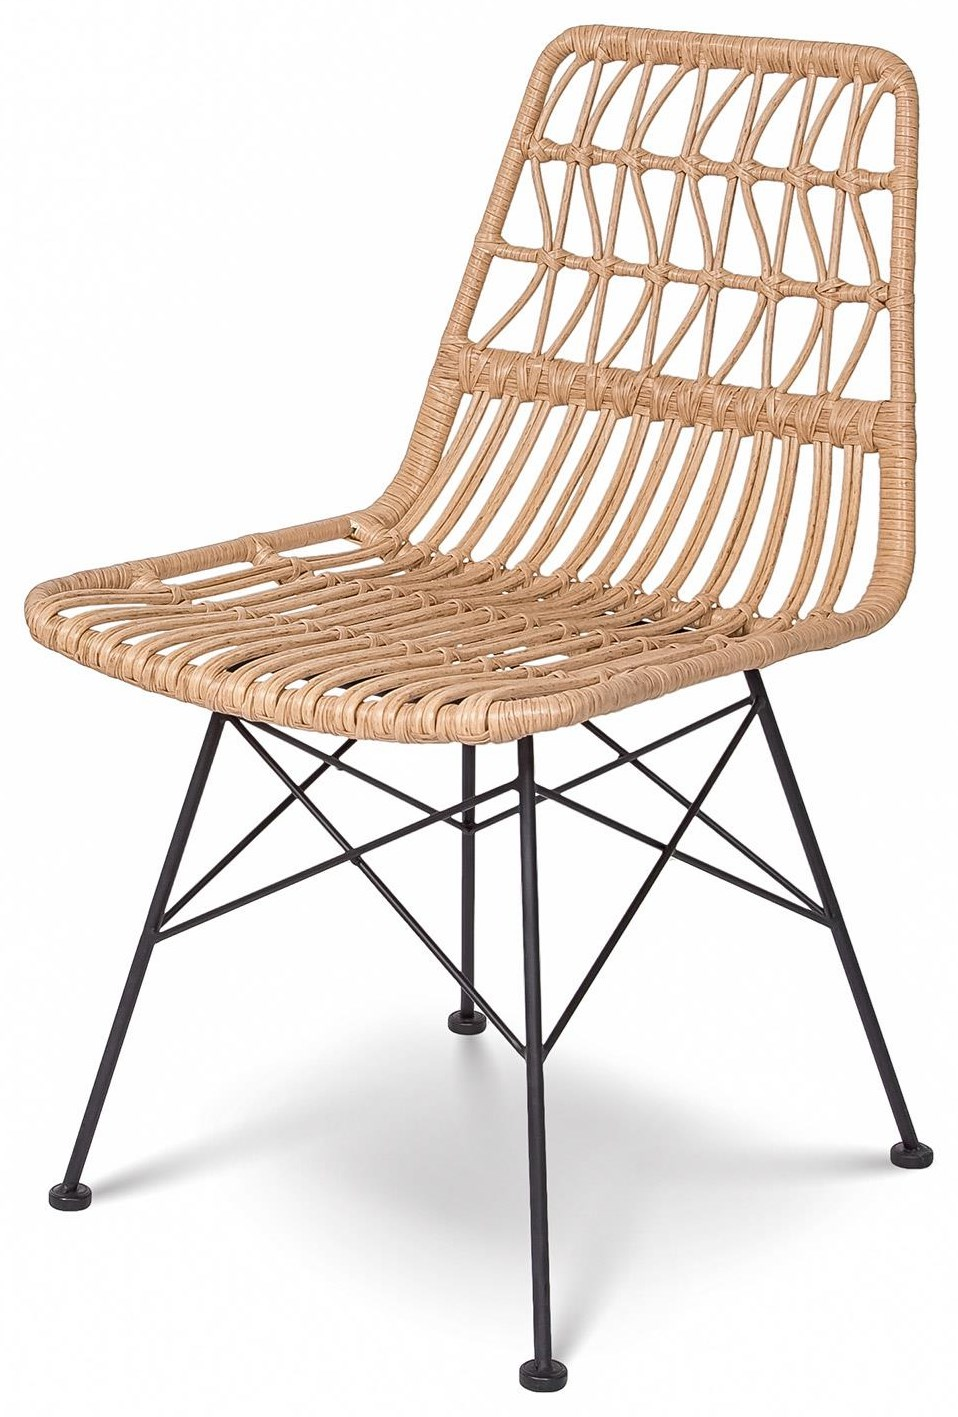 Calabria Calabrica Chair by Style In Form at Stoney Creek Furniture